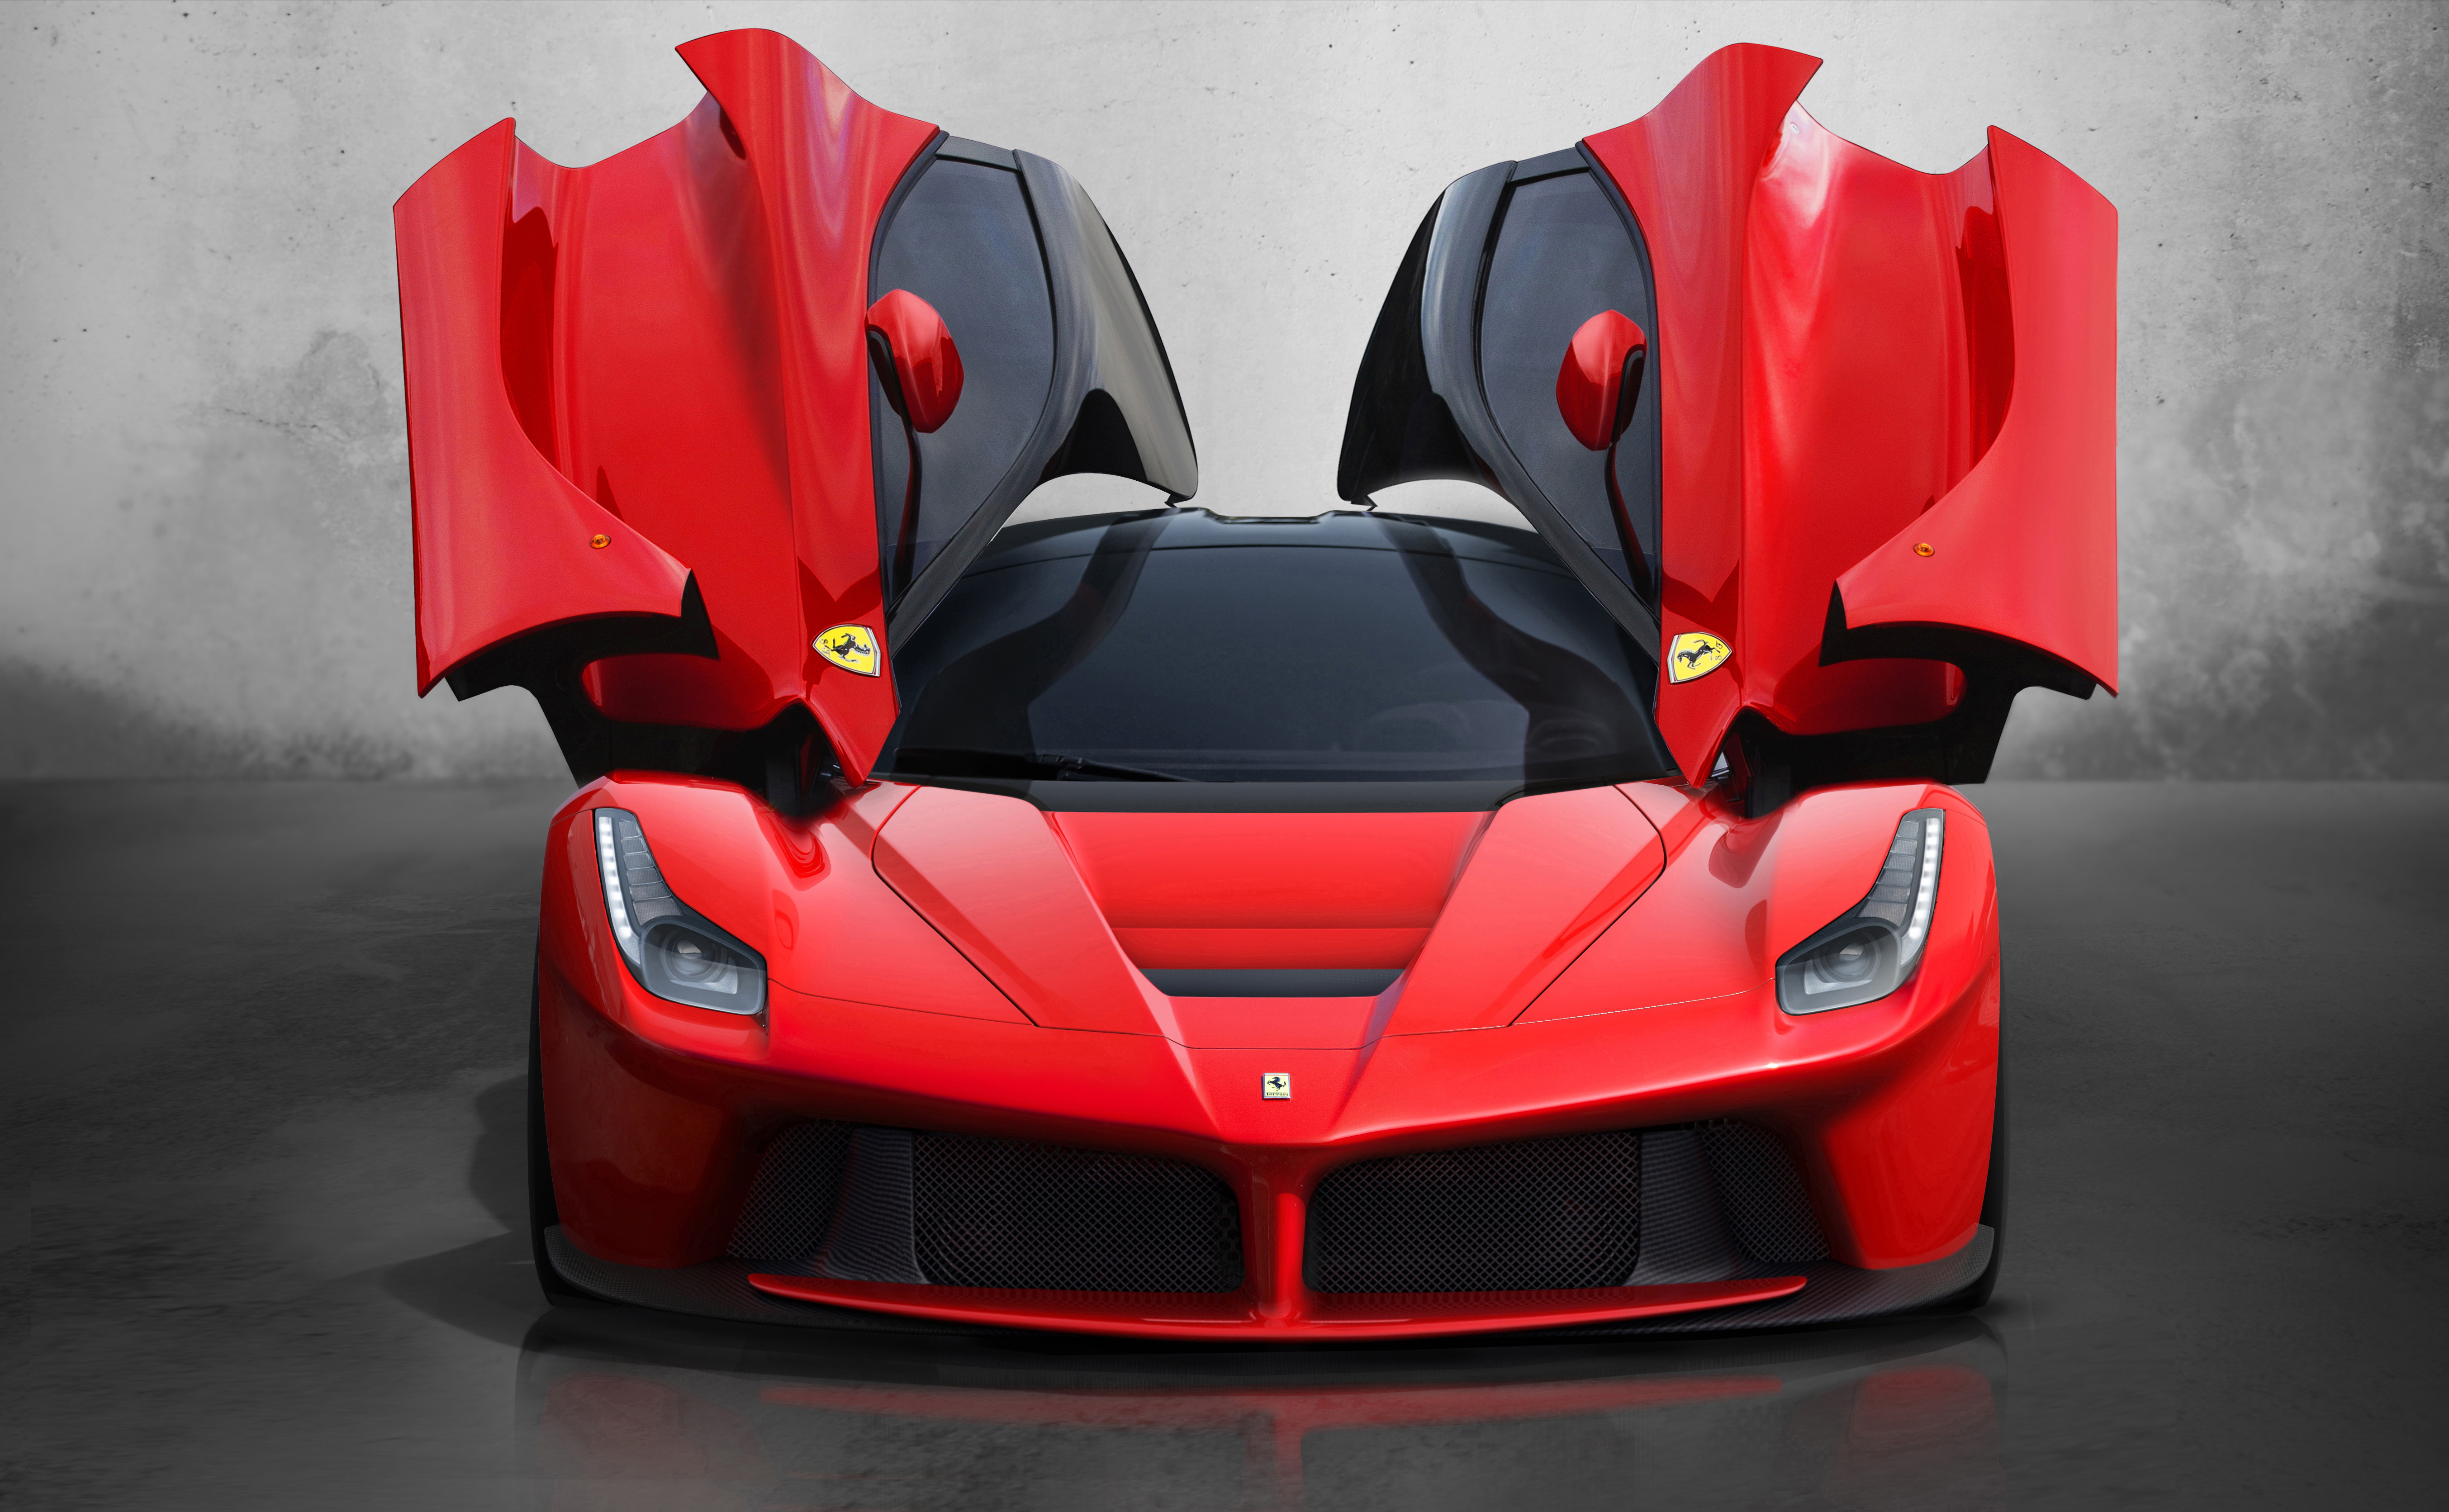 Justin Bieber Owns 0 2 Percent Of The World S Laferraris The Verge